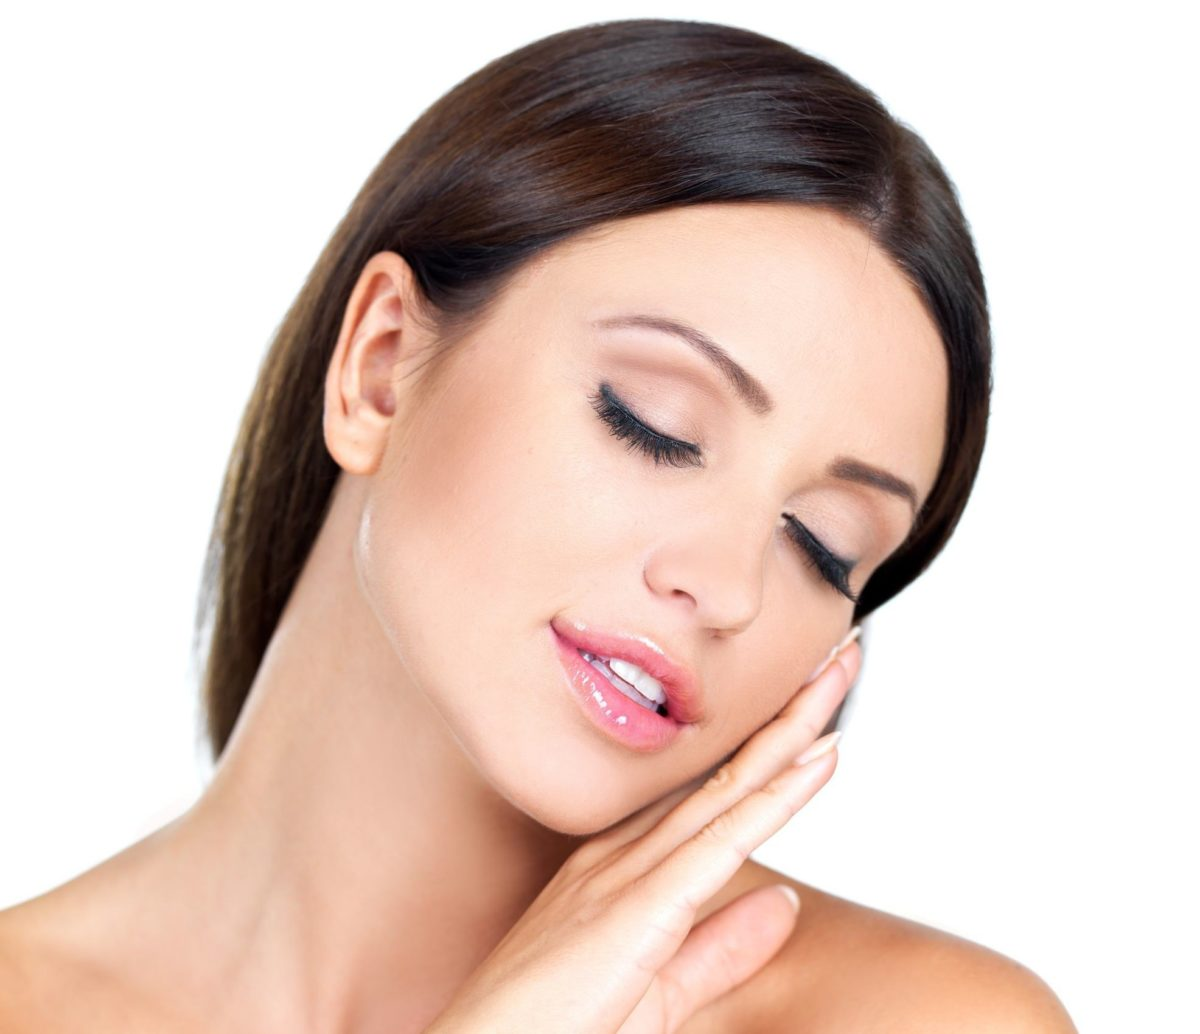 Cosmetic Surgery Blog for Breast, Face and Body